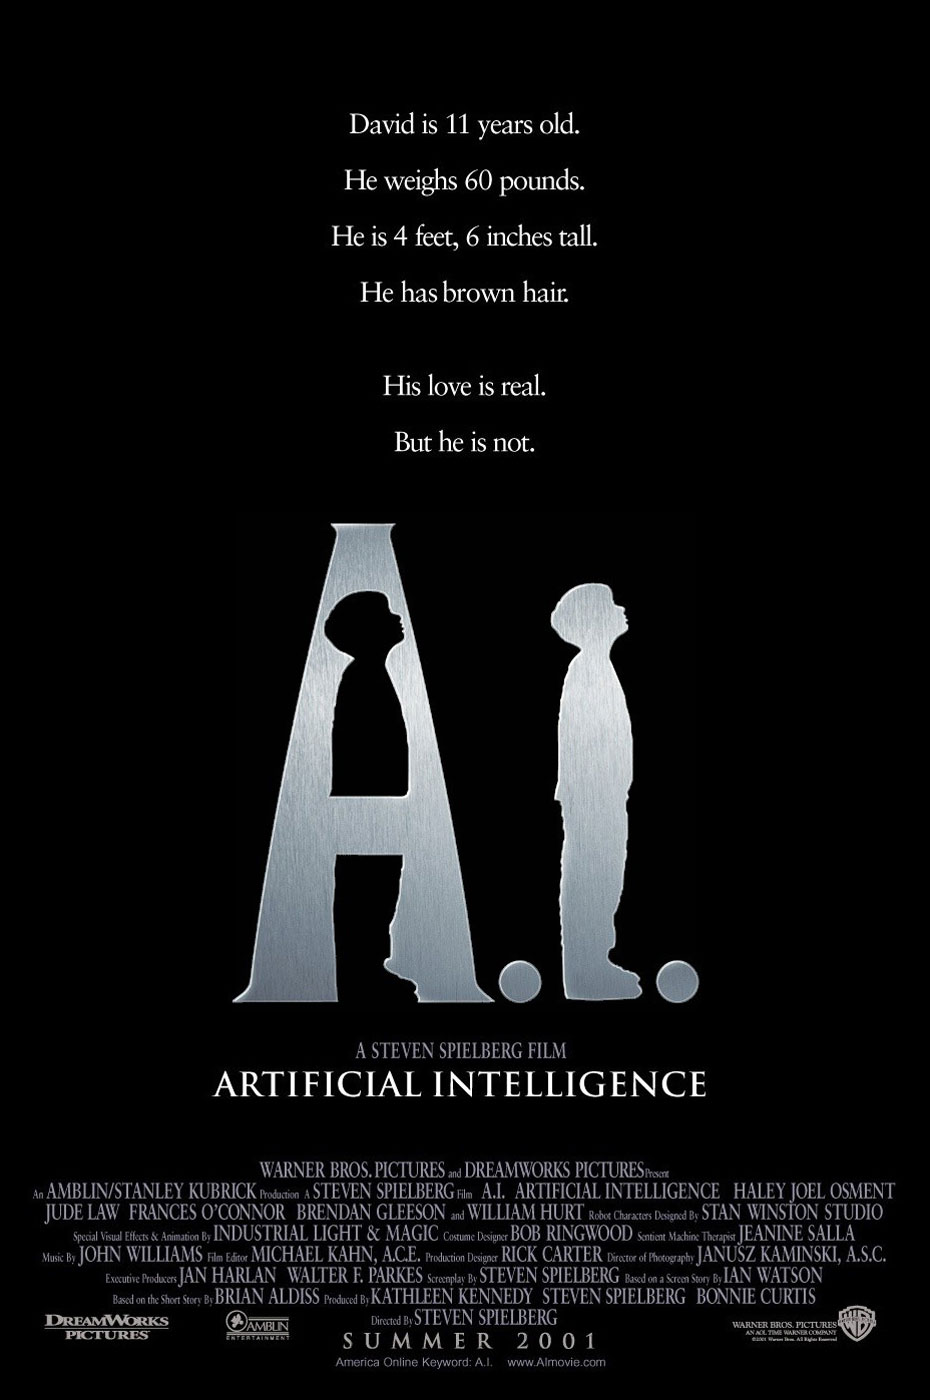 A.I. Artificial Intelligence - Steven Spielberg (2001)